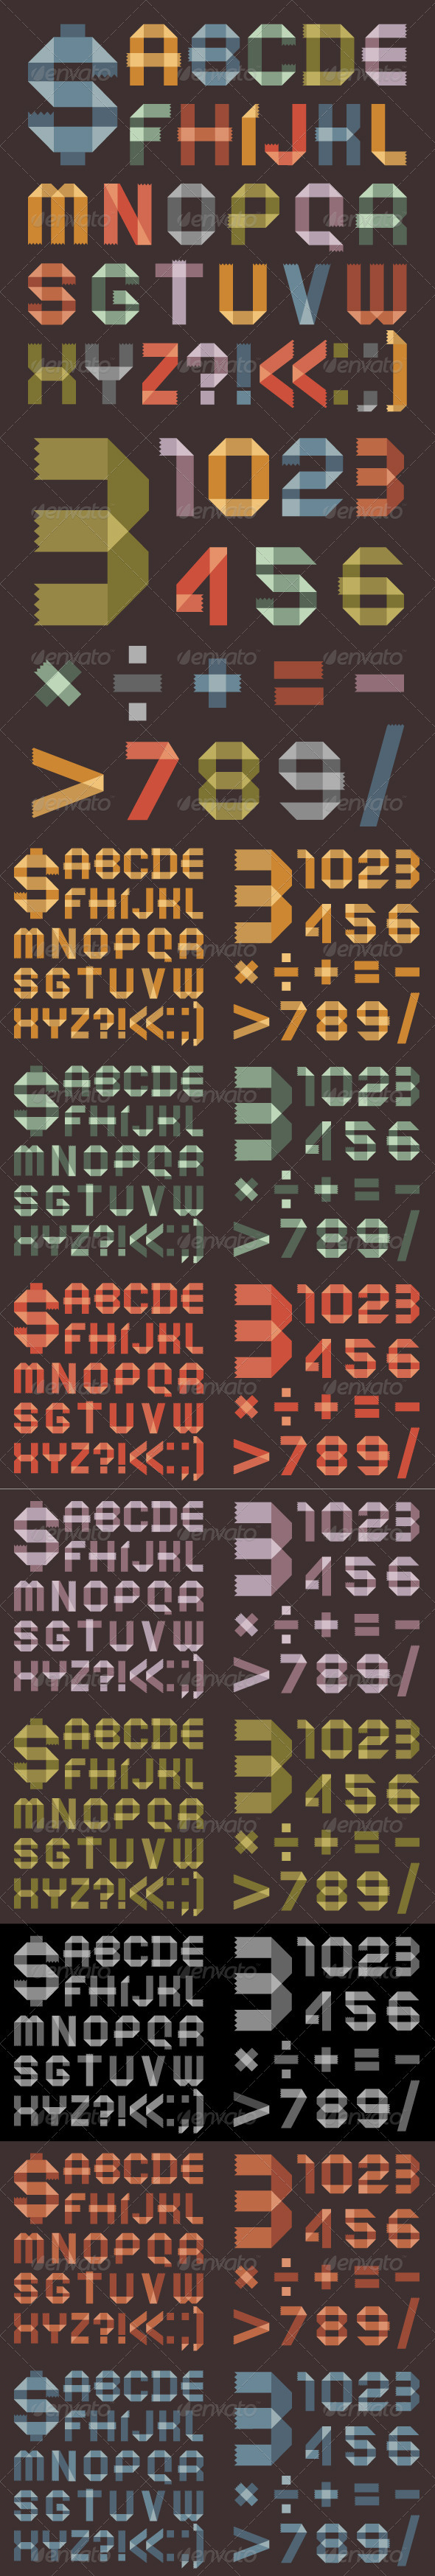 Font From Colored Scotch Tape - 8 Colors - Decorative Symbols Decorative